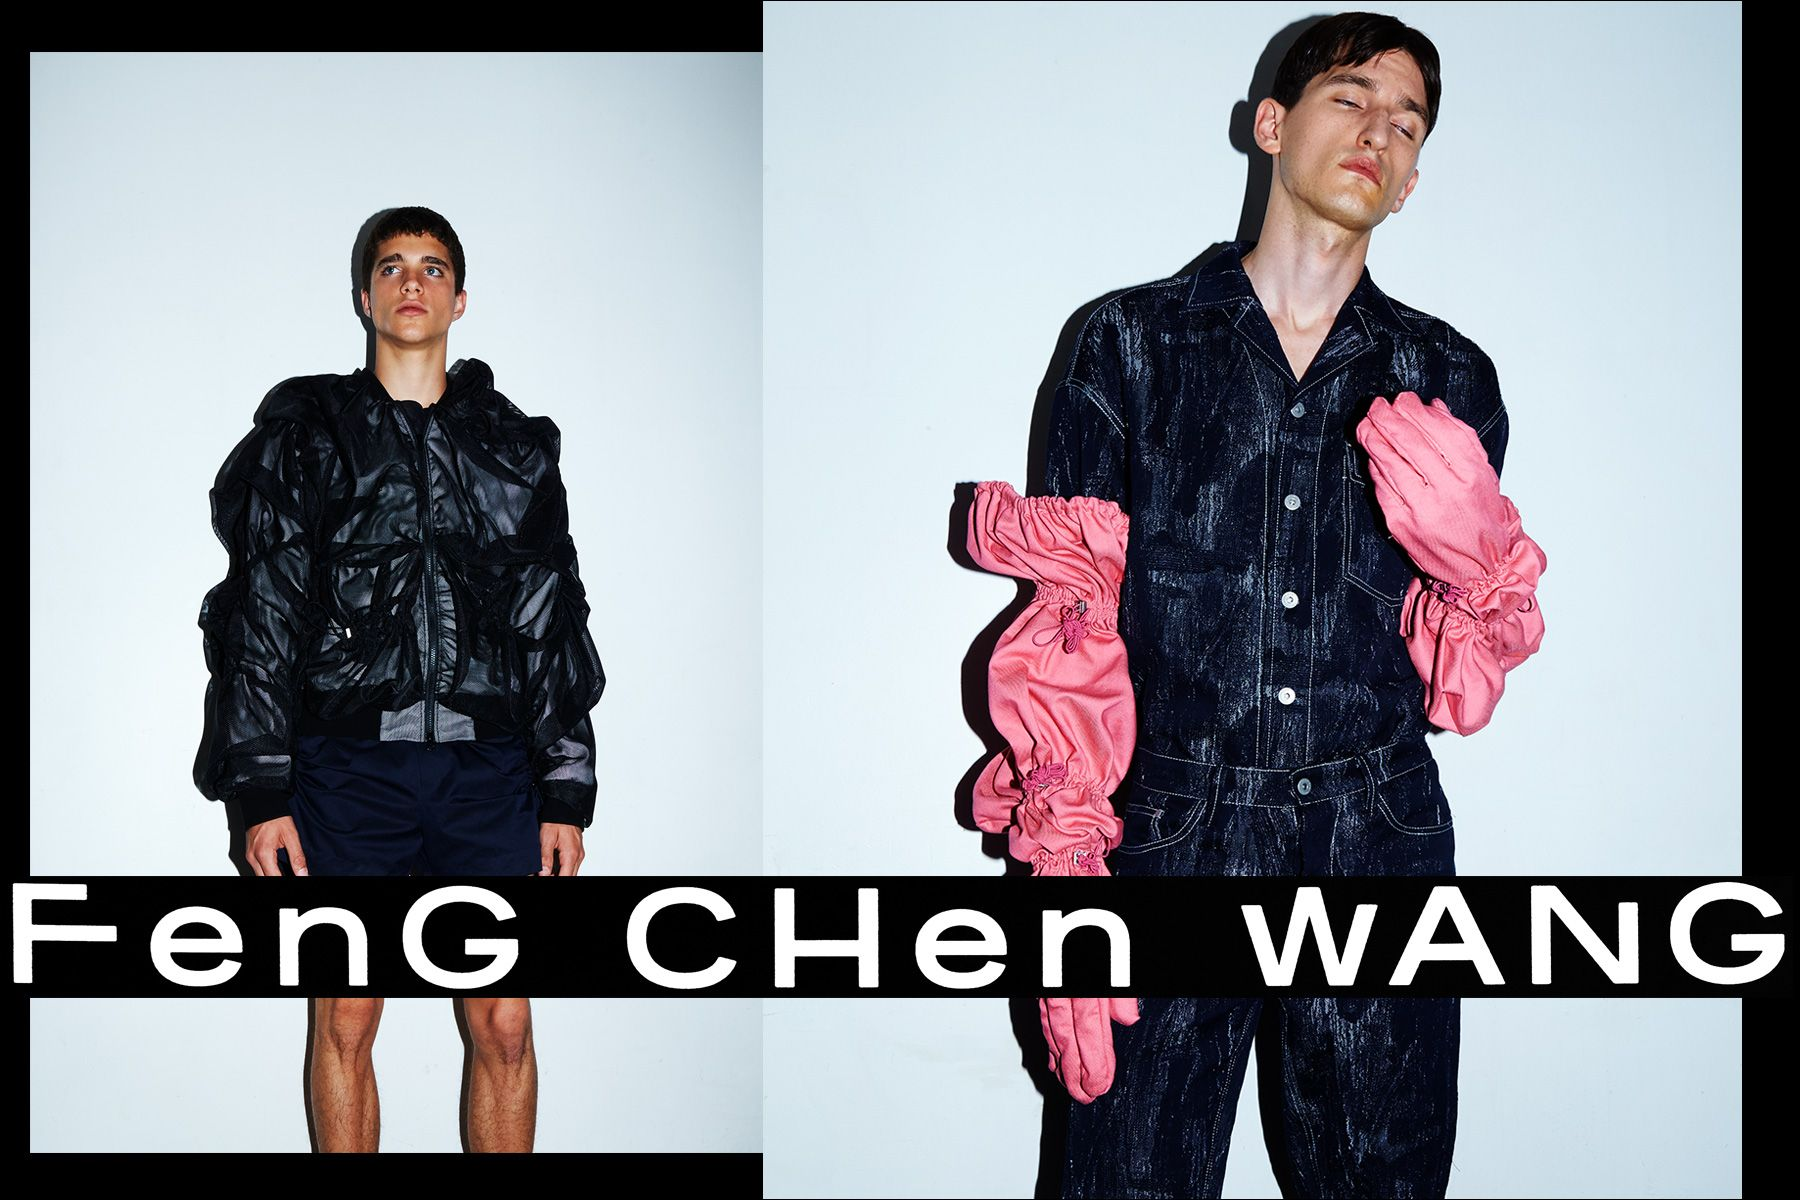 Feng Chen Wang. S/S18. Photography by Alexander Thompson for Ponyboy magazine.